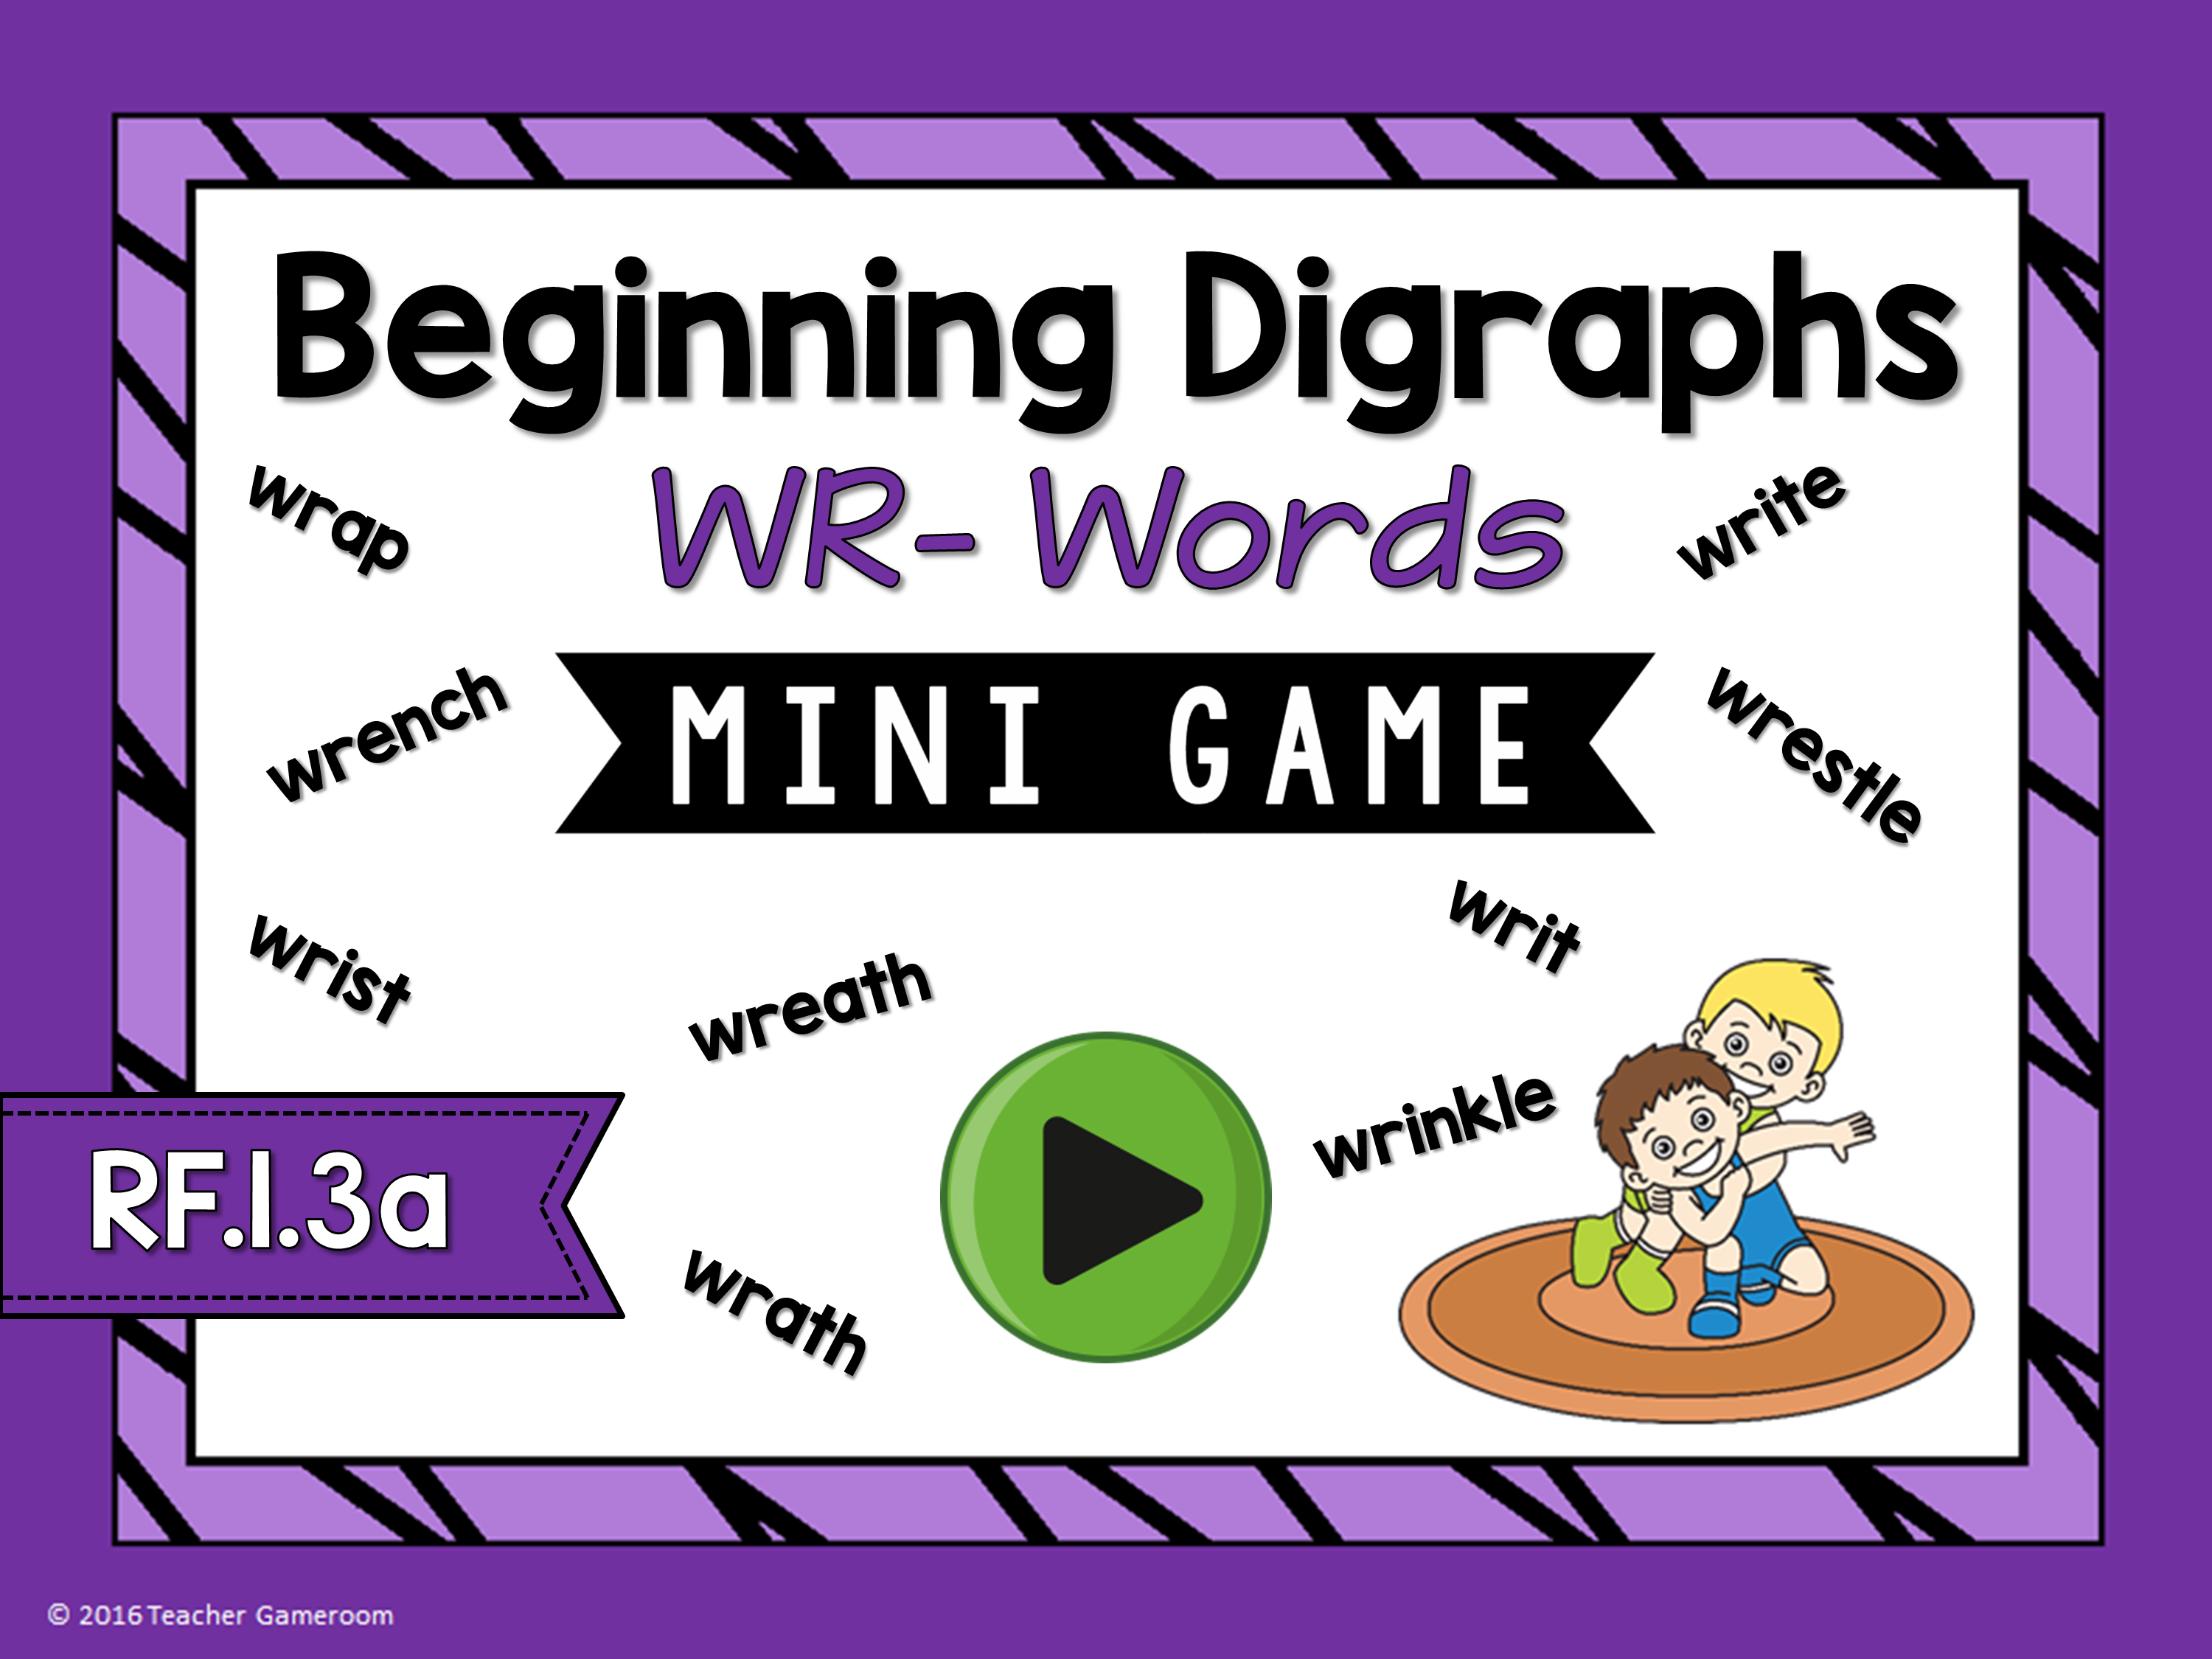 Beginning Digraphs Wr- Words Mini Game